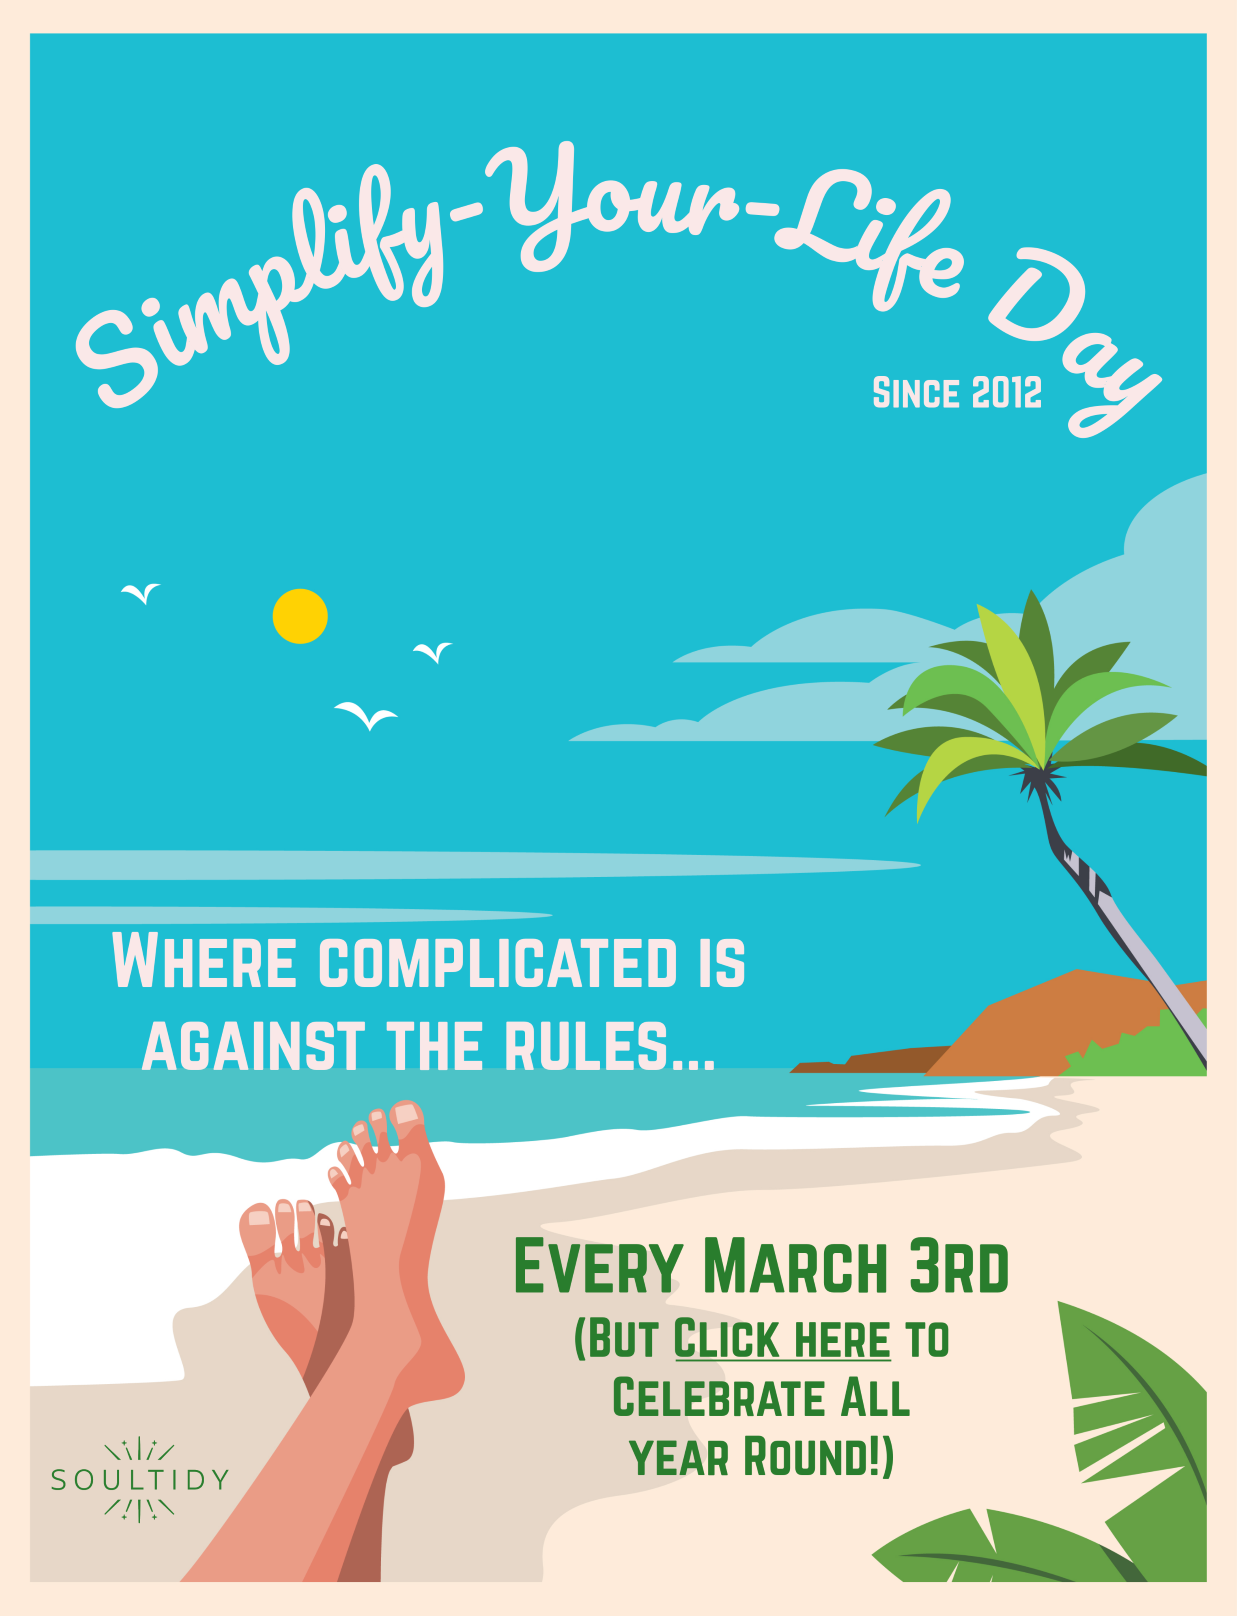 Simplify-Your-Life Day™: Where Complicated Is Against The Rules...